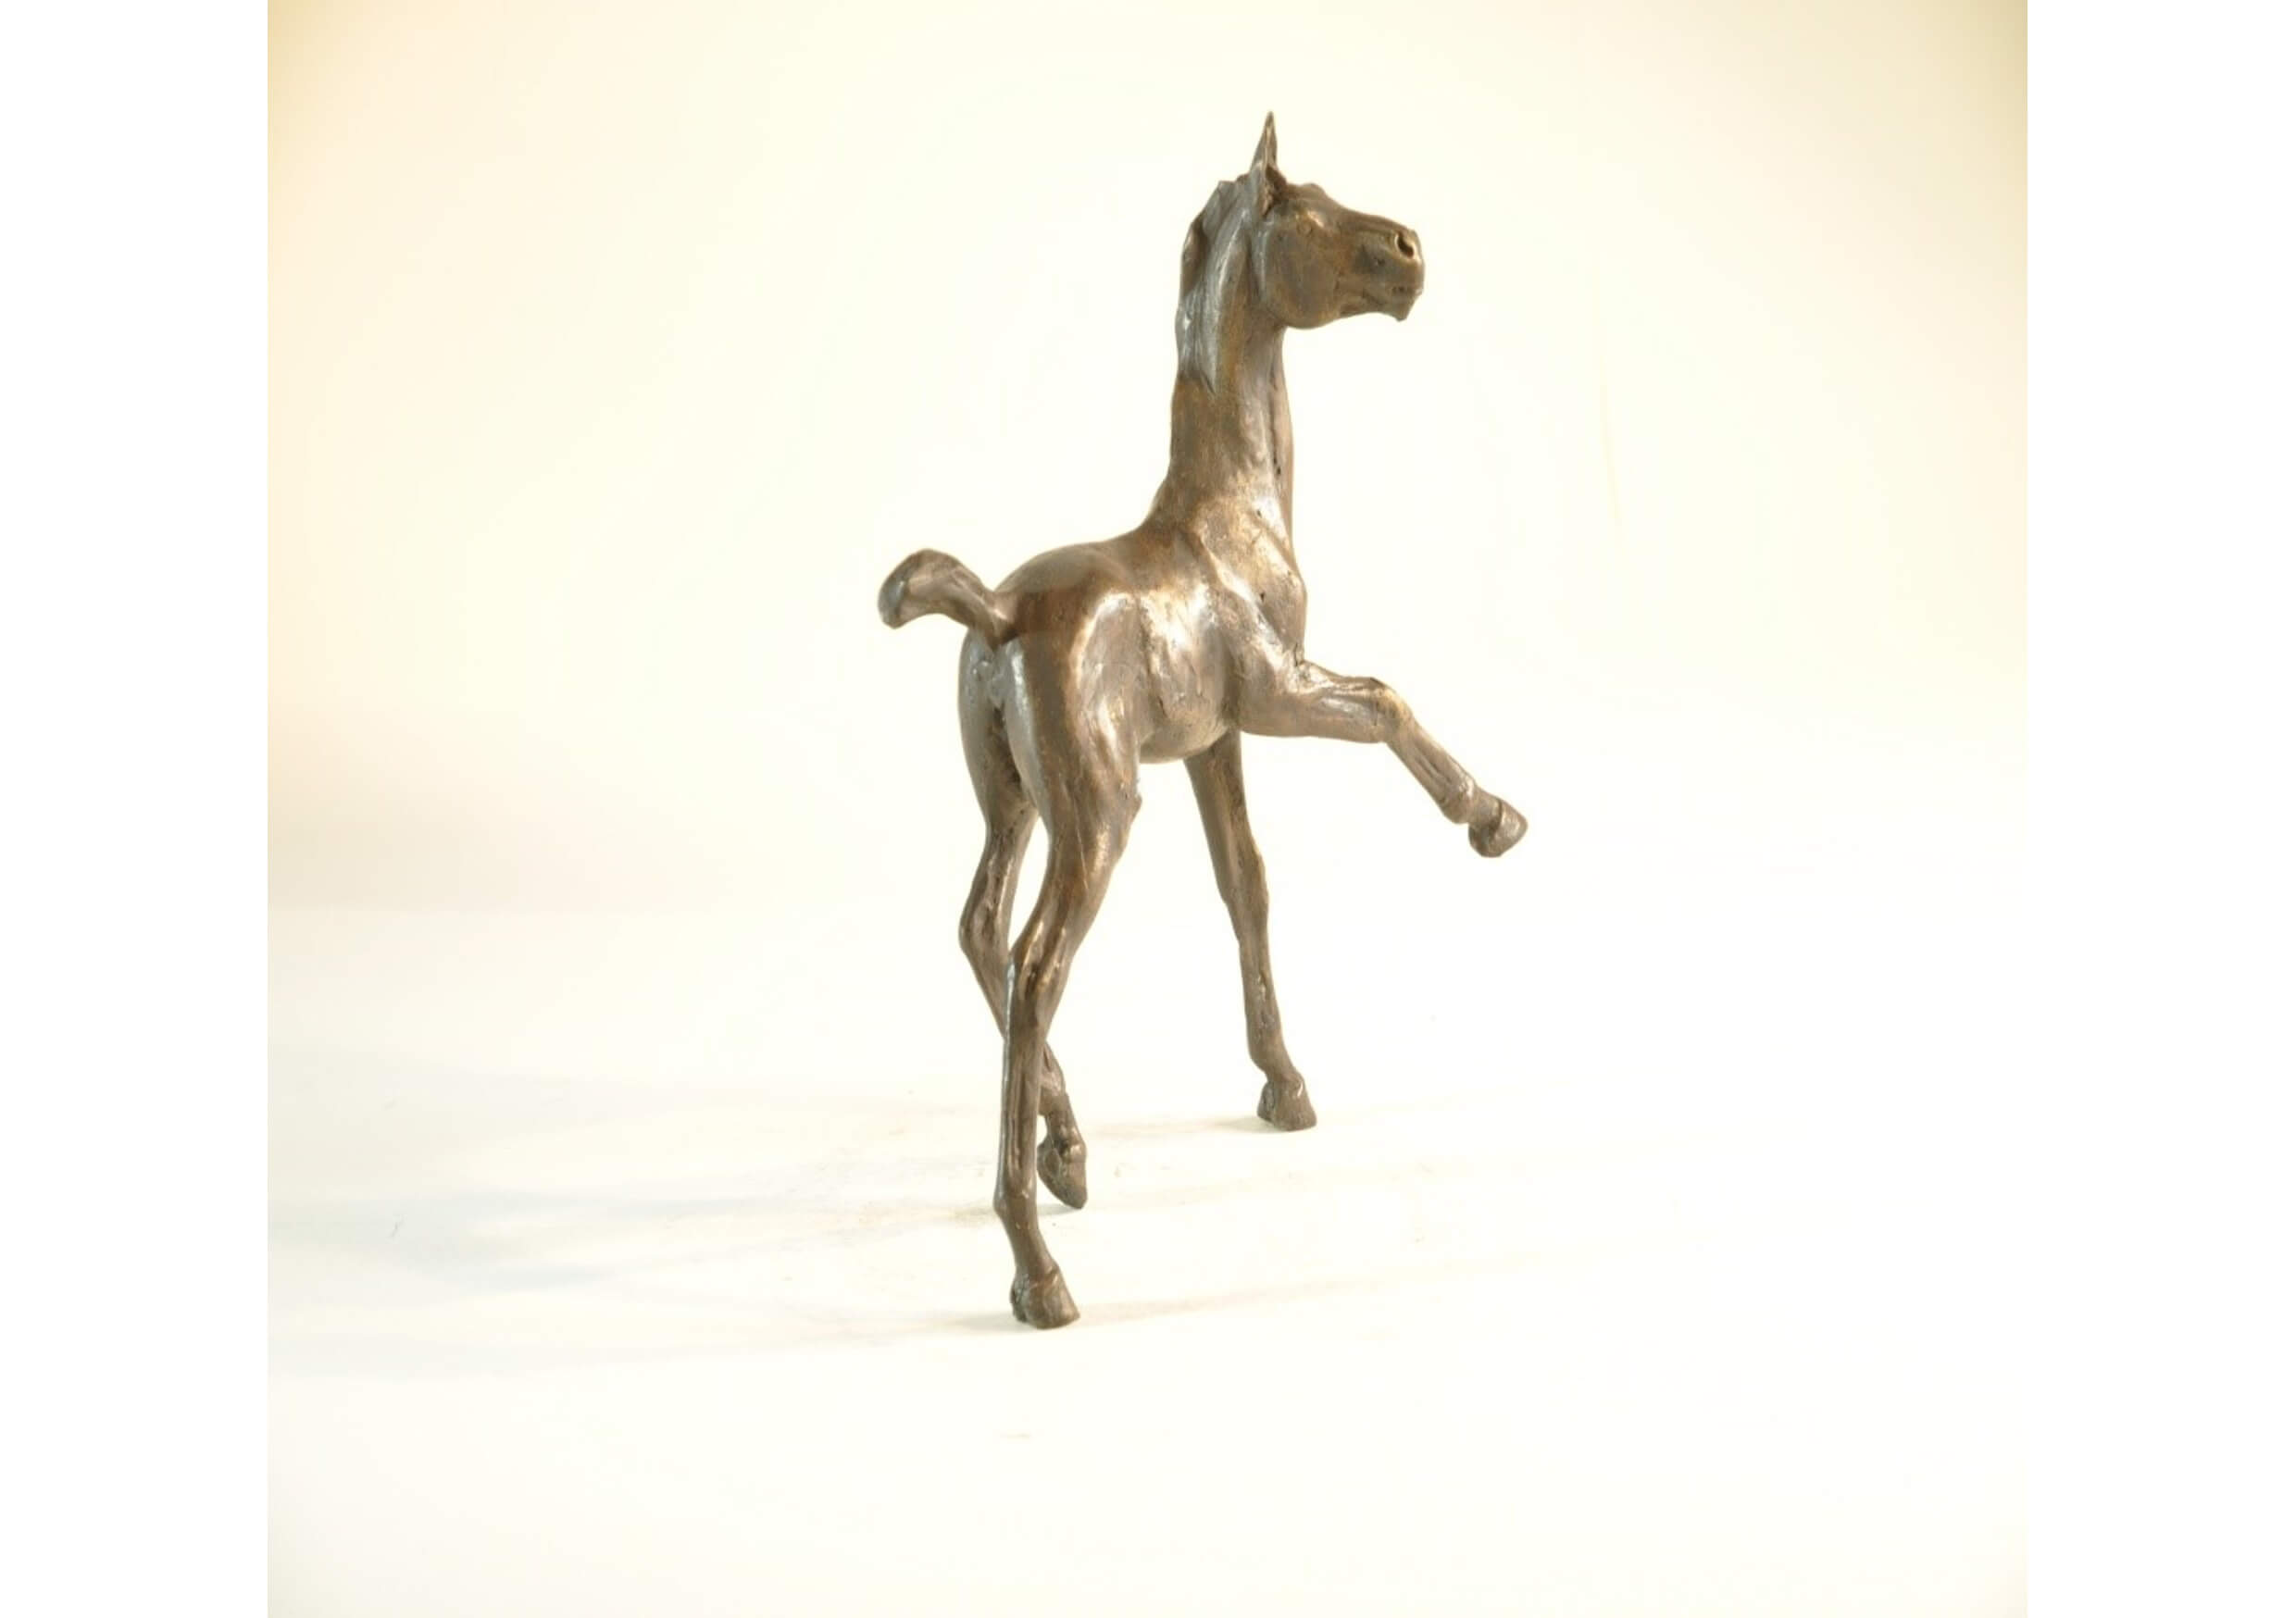 The Horse #15, Bronze sculpture, 15 x 21.5 x 25.5 cm